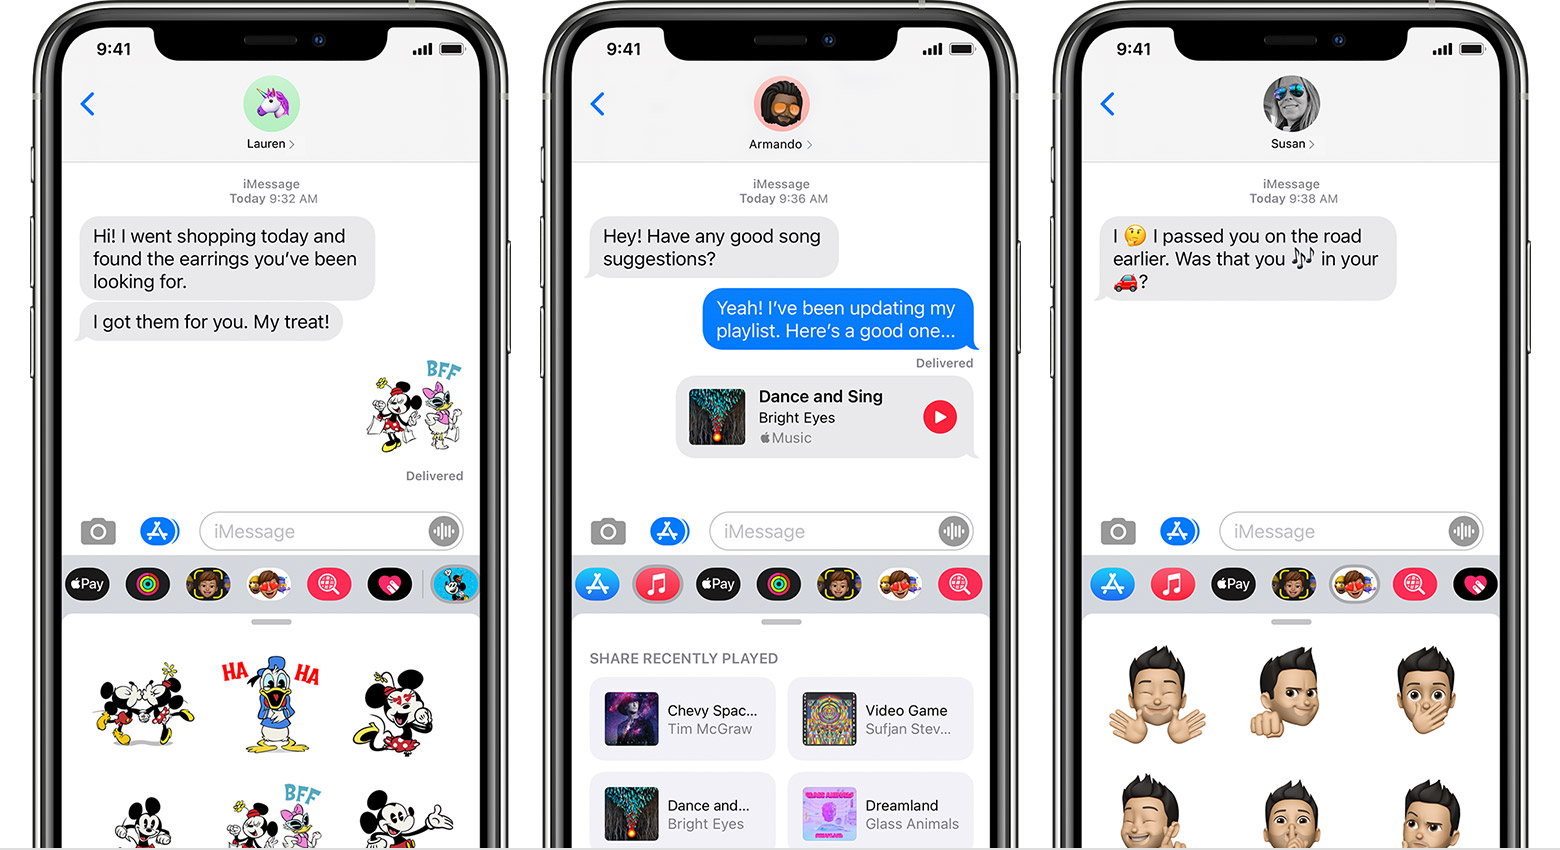 iPhone showing iMessage apps in a messages conversation